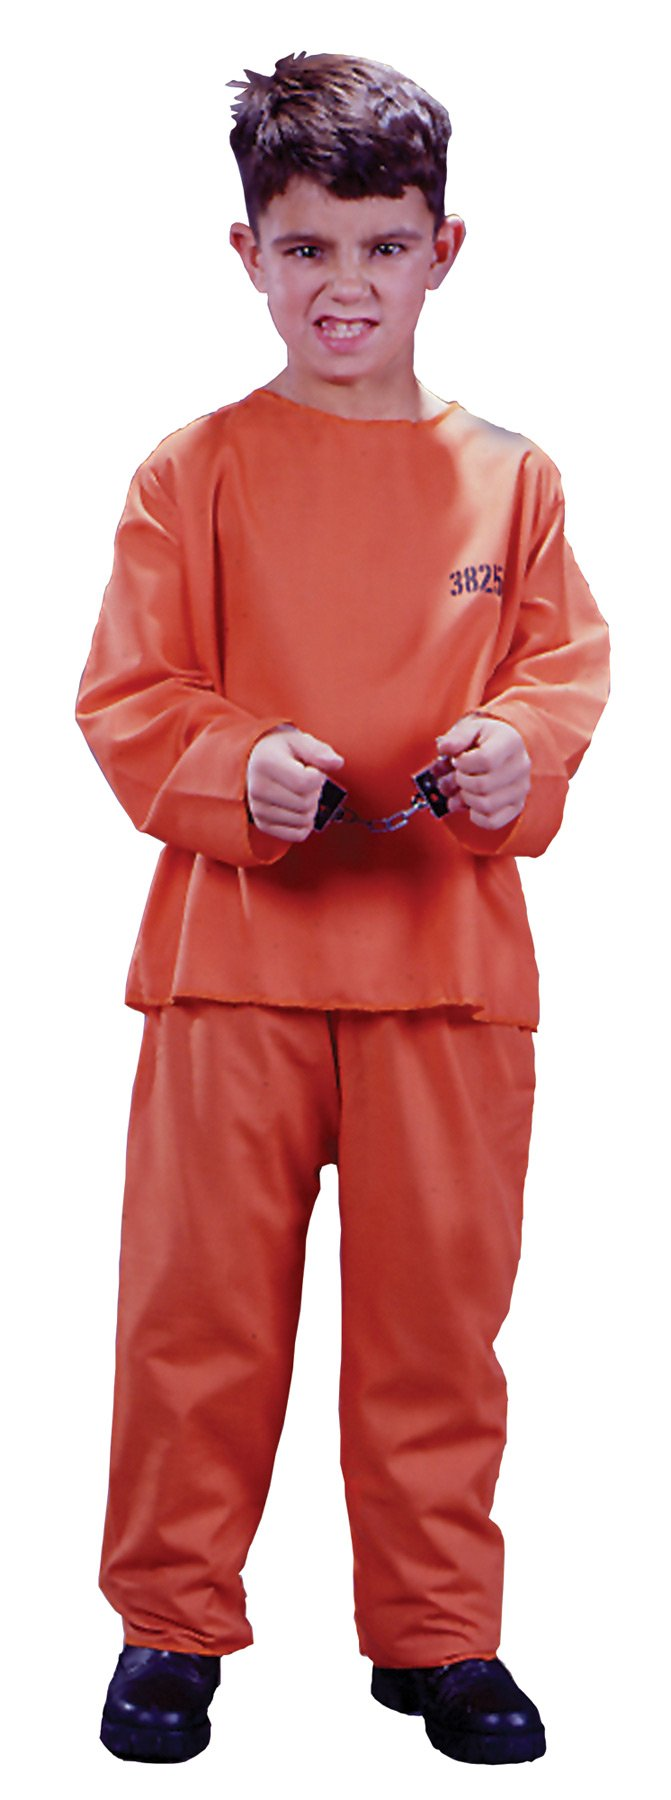 Got Busted Boys Costume Large